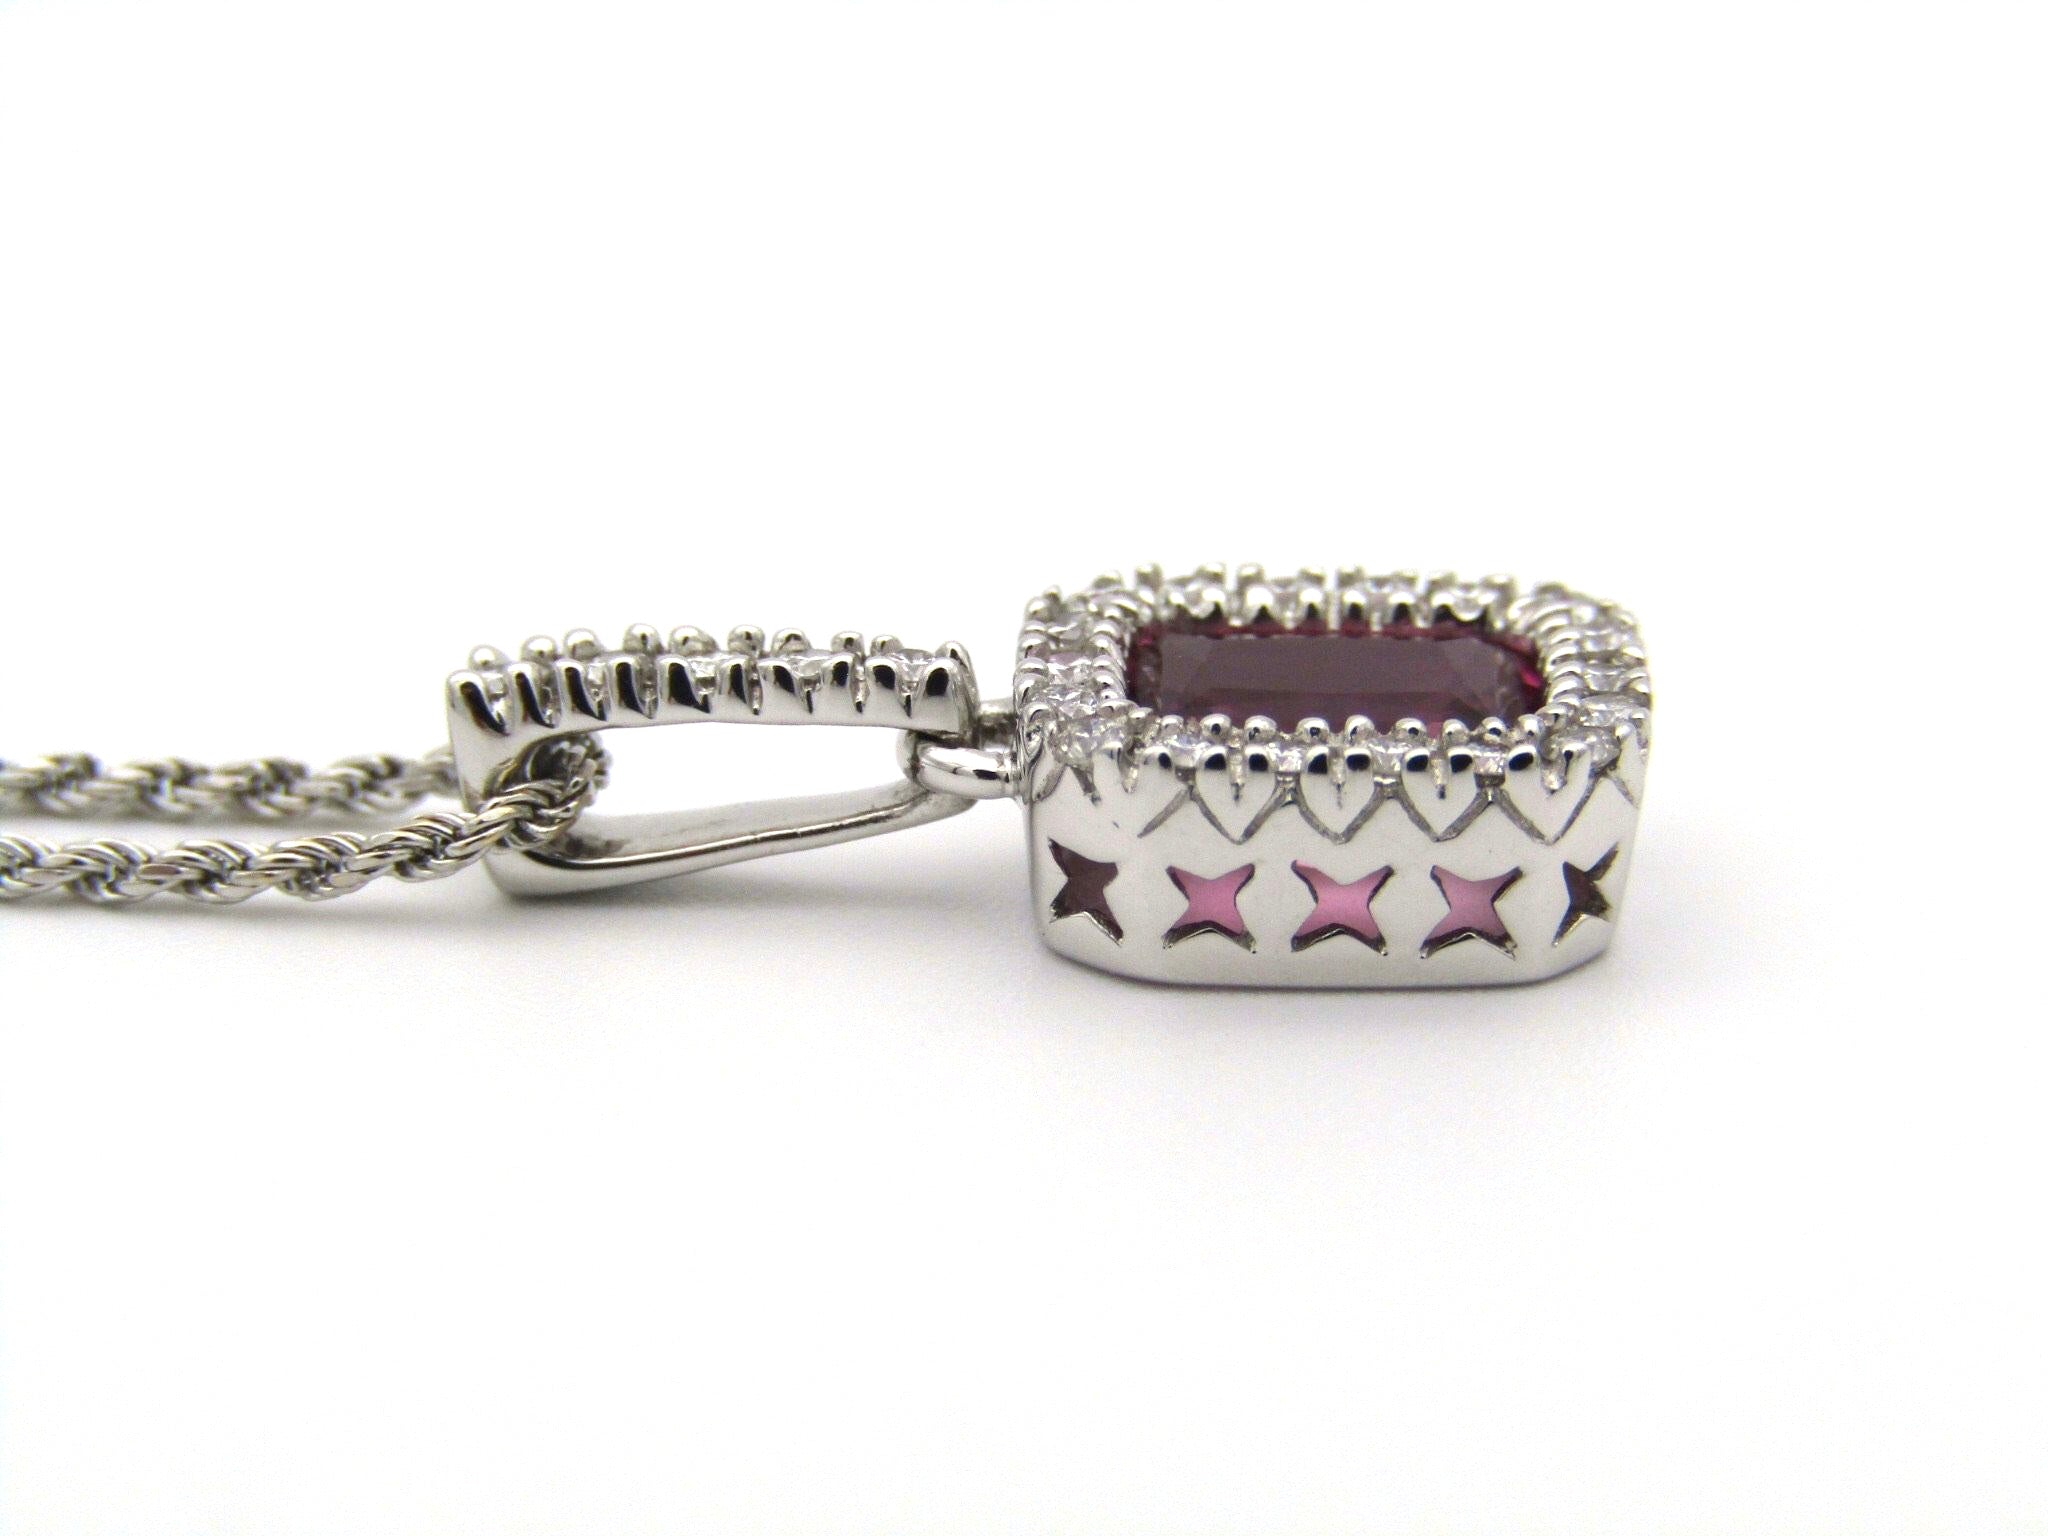 14kt white gold Pink Tourmaline and diamonds pendant.